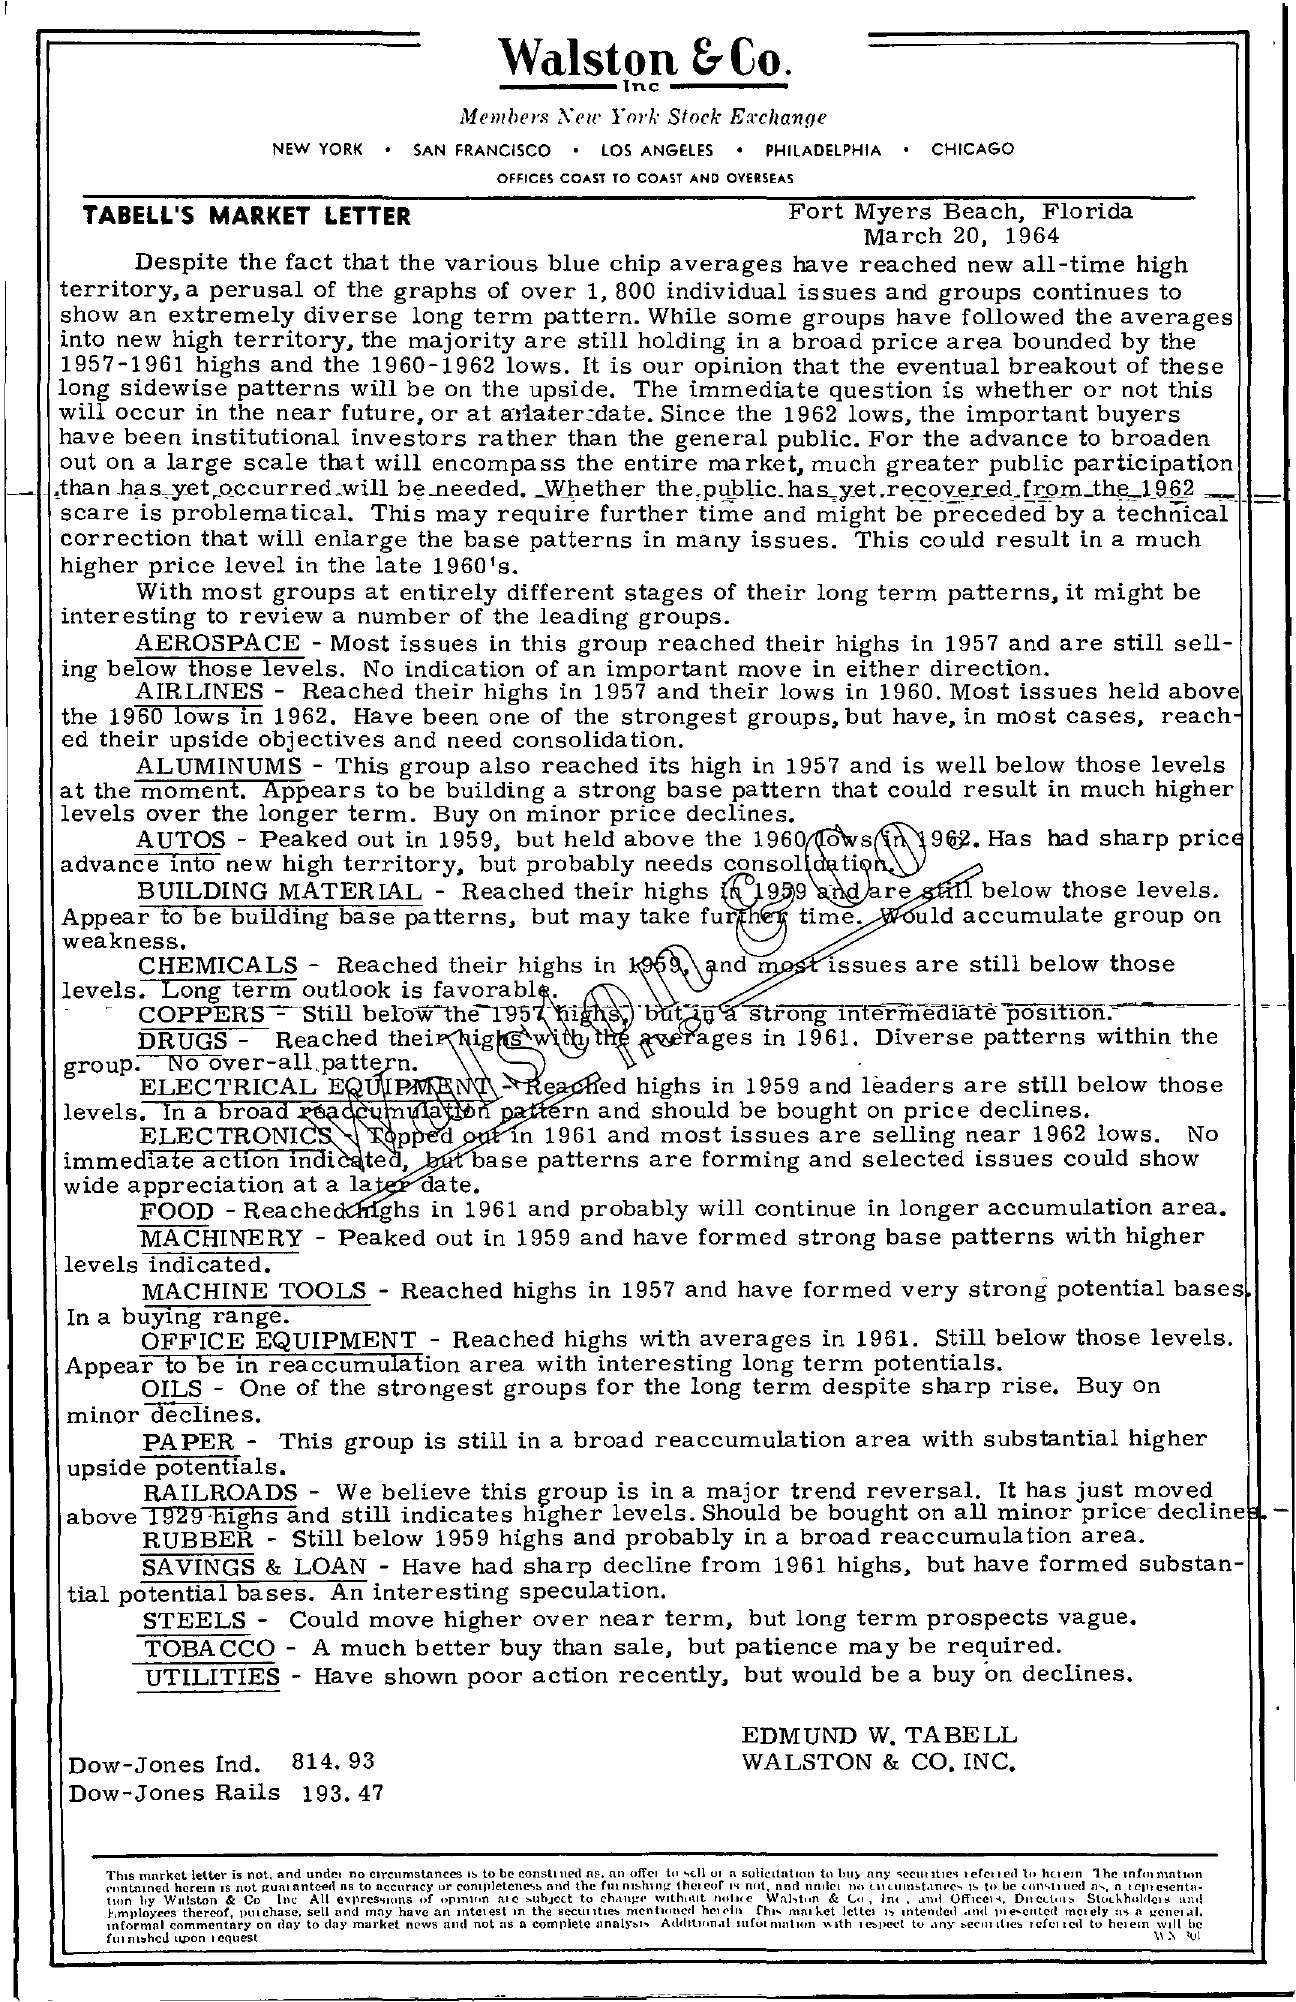 Tabell's Market Letter - March 20, 1964